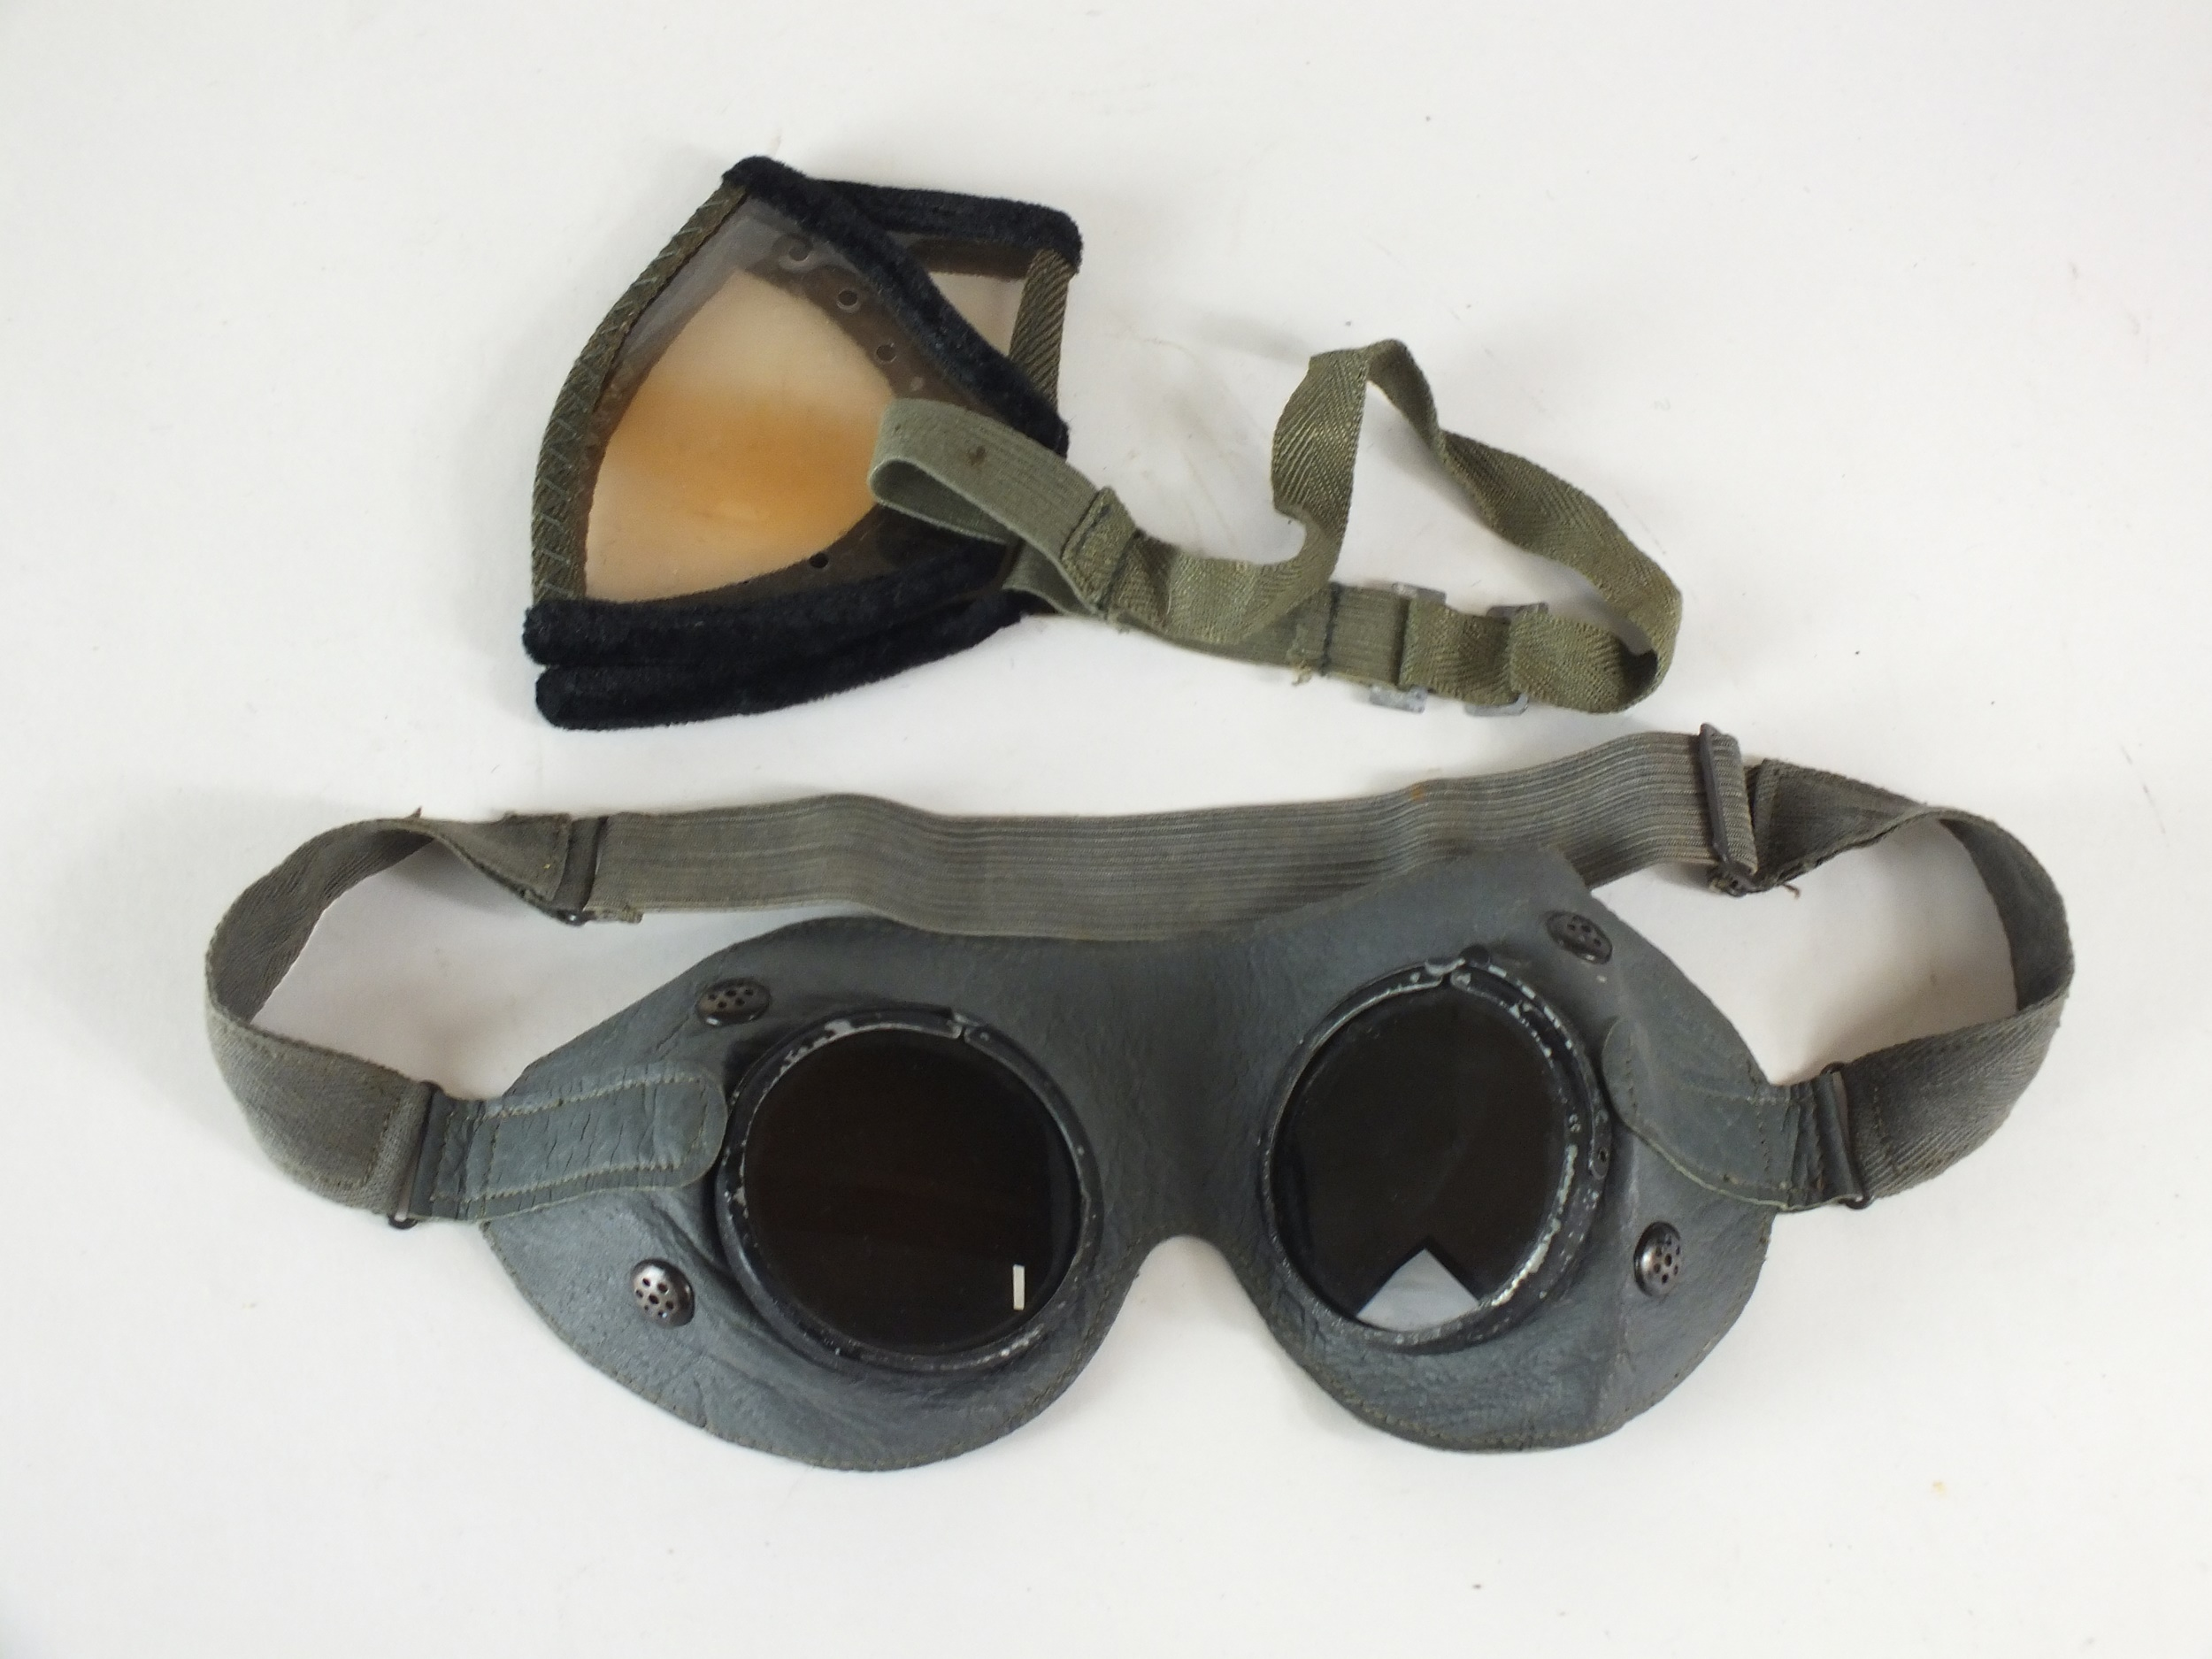 A pair of German WW2 tropical dust goggles together with a pair of German WW2 grey leather